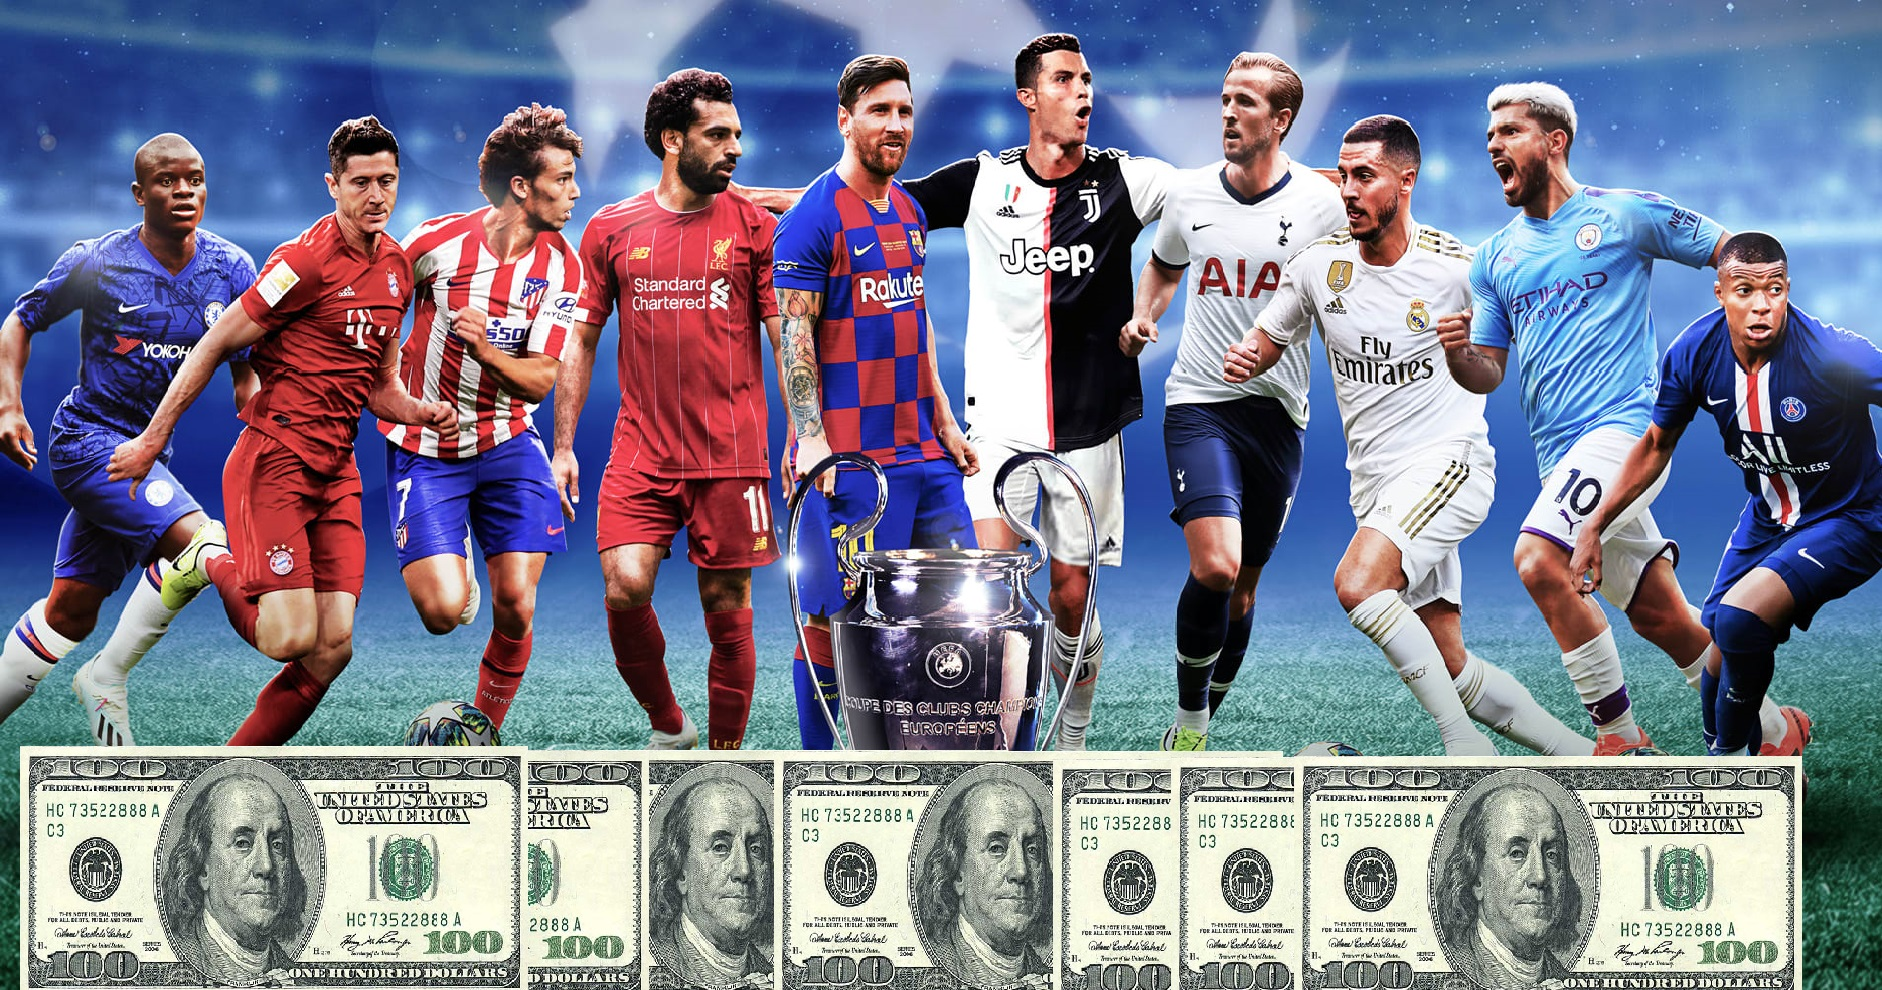 Do you know all the world's richest soccer players? (quiz)